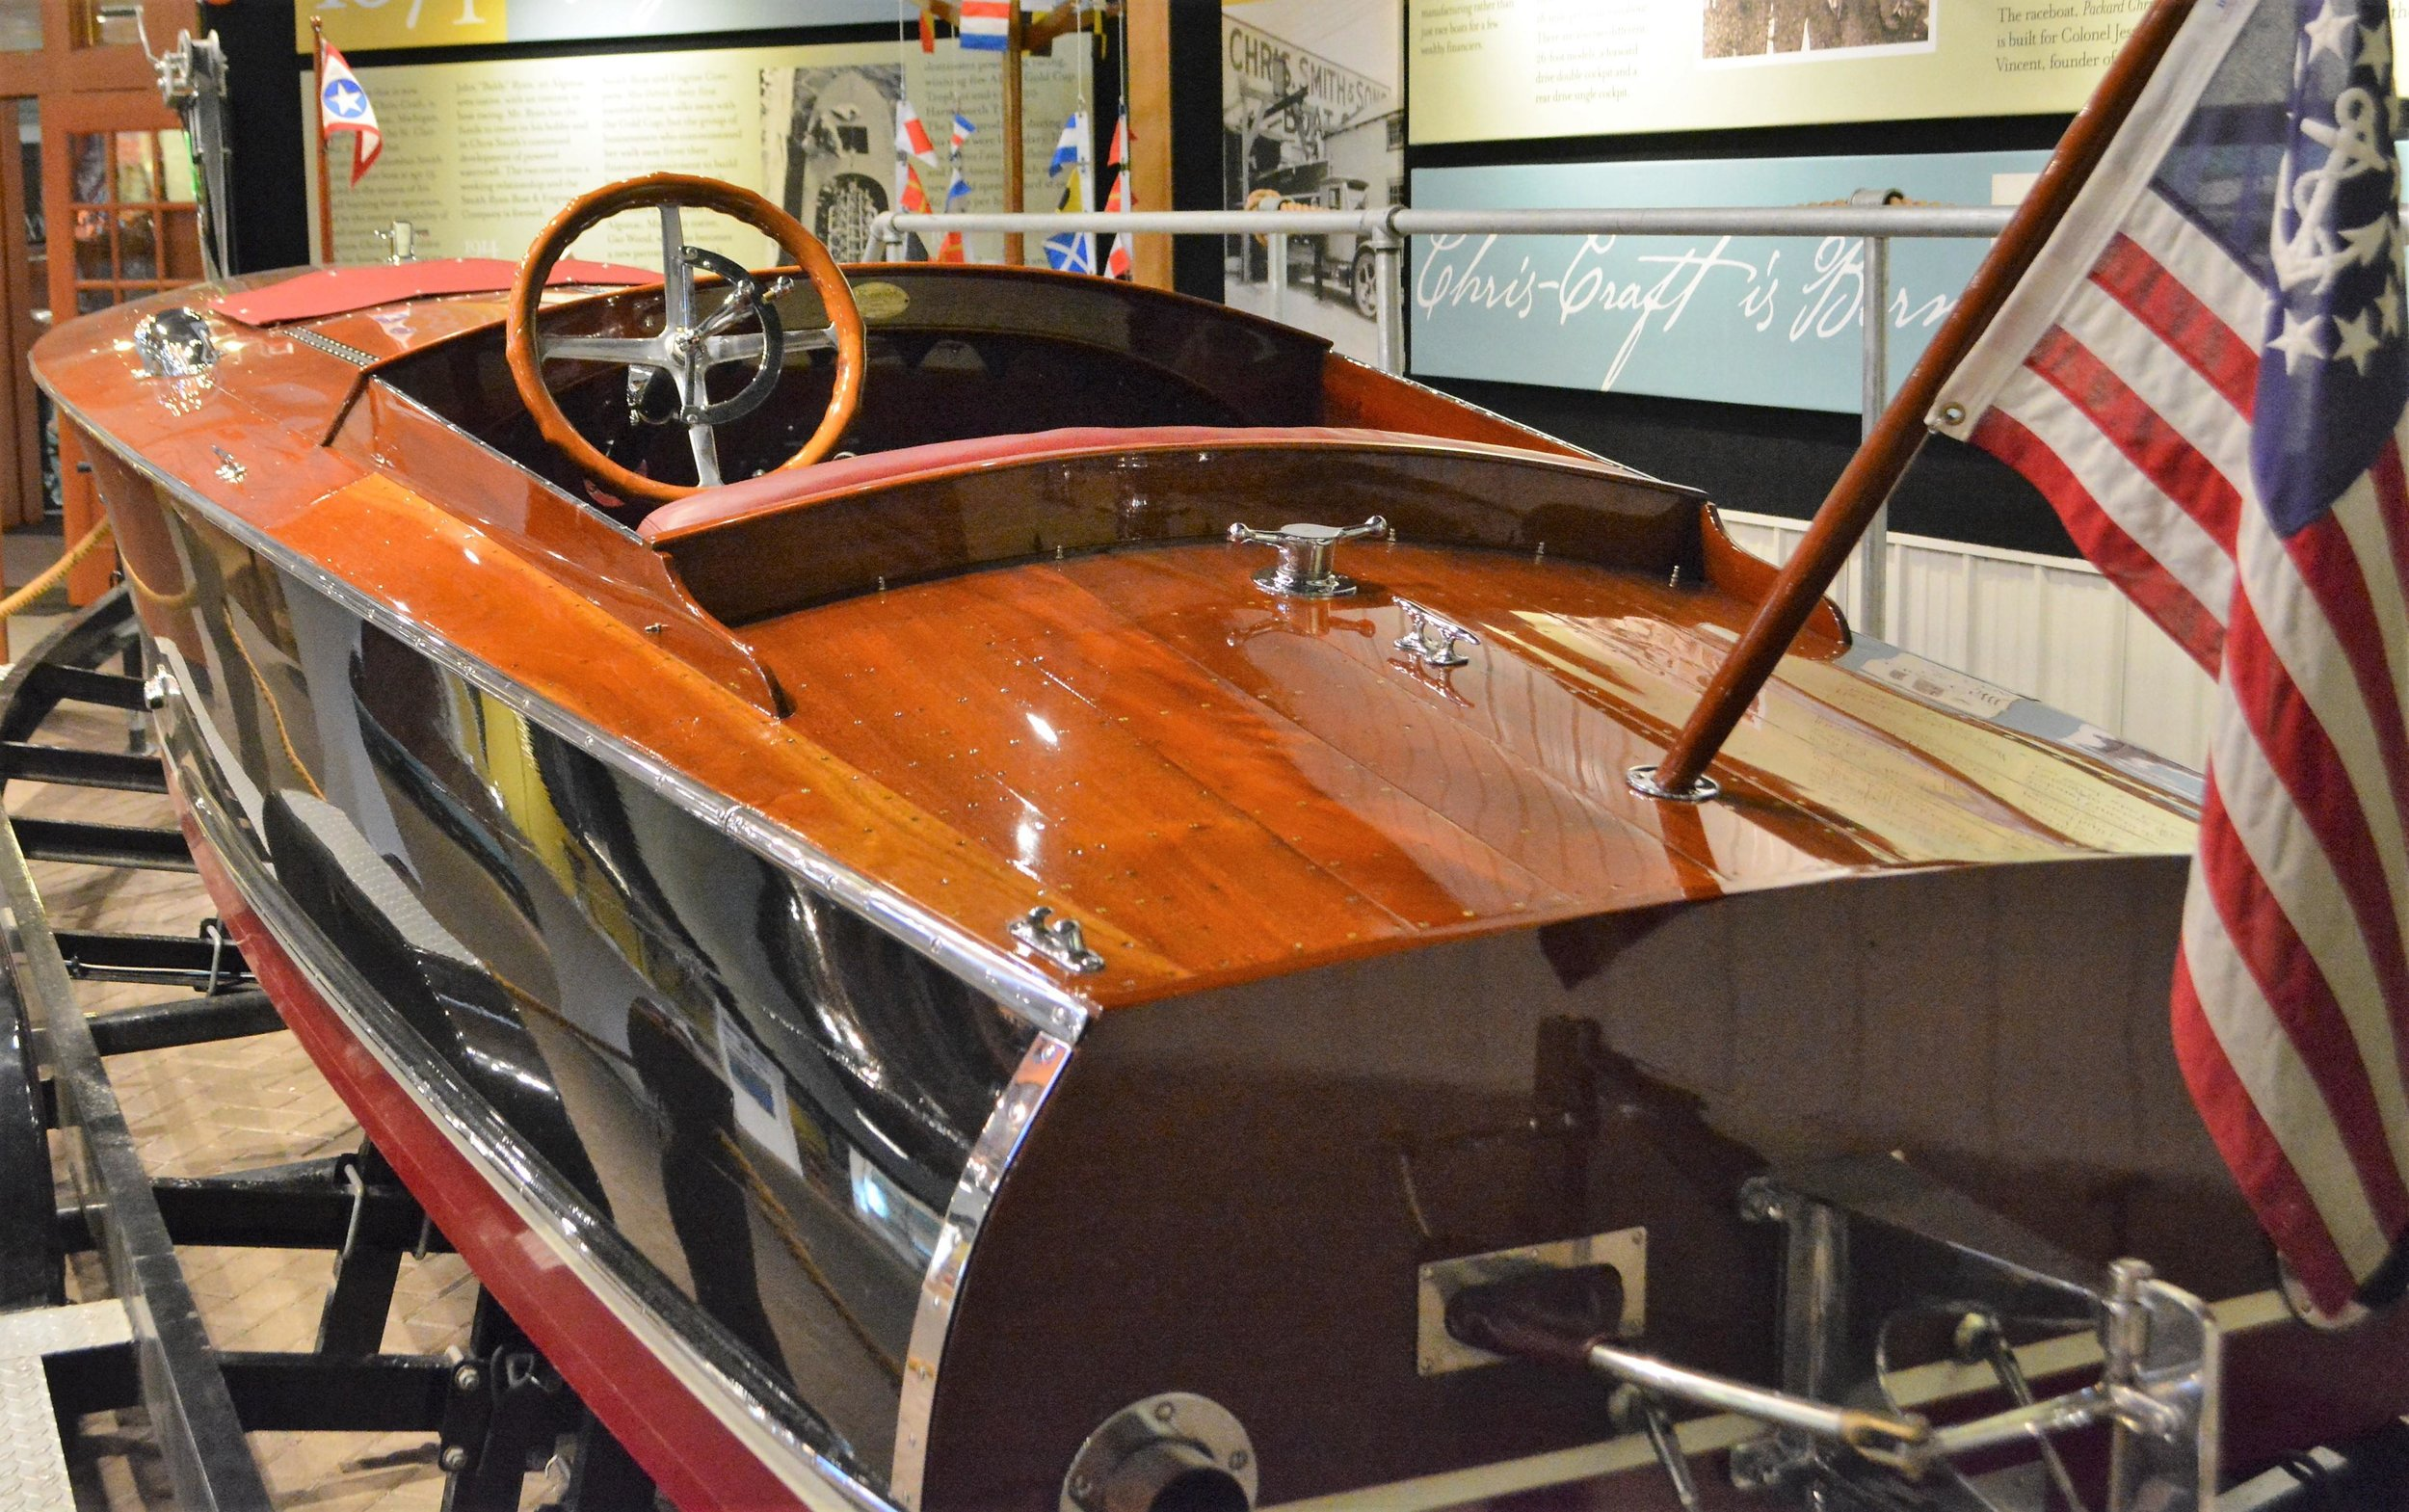 One of three new additions to the museum's speedboat collection, this 1926 Hacker Craft did a lot of racing in its time. (Ross Evavold / Echo Press)